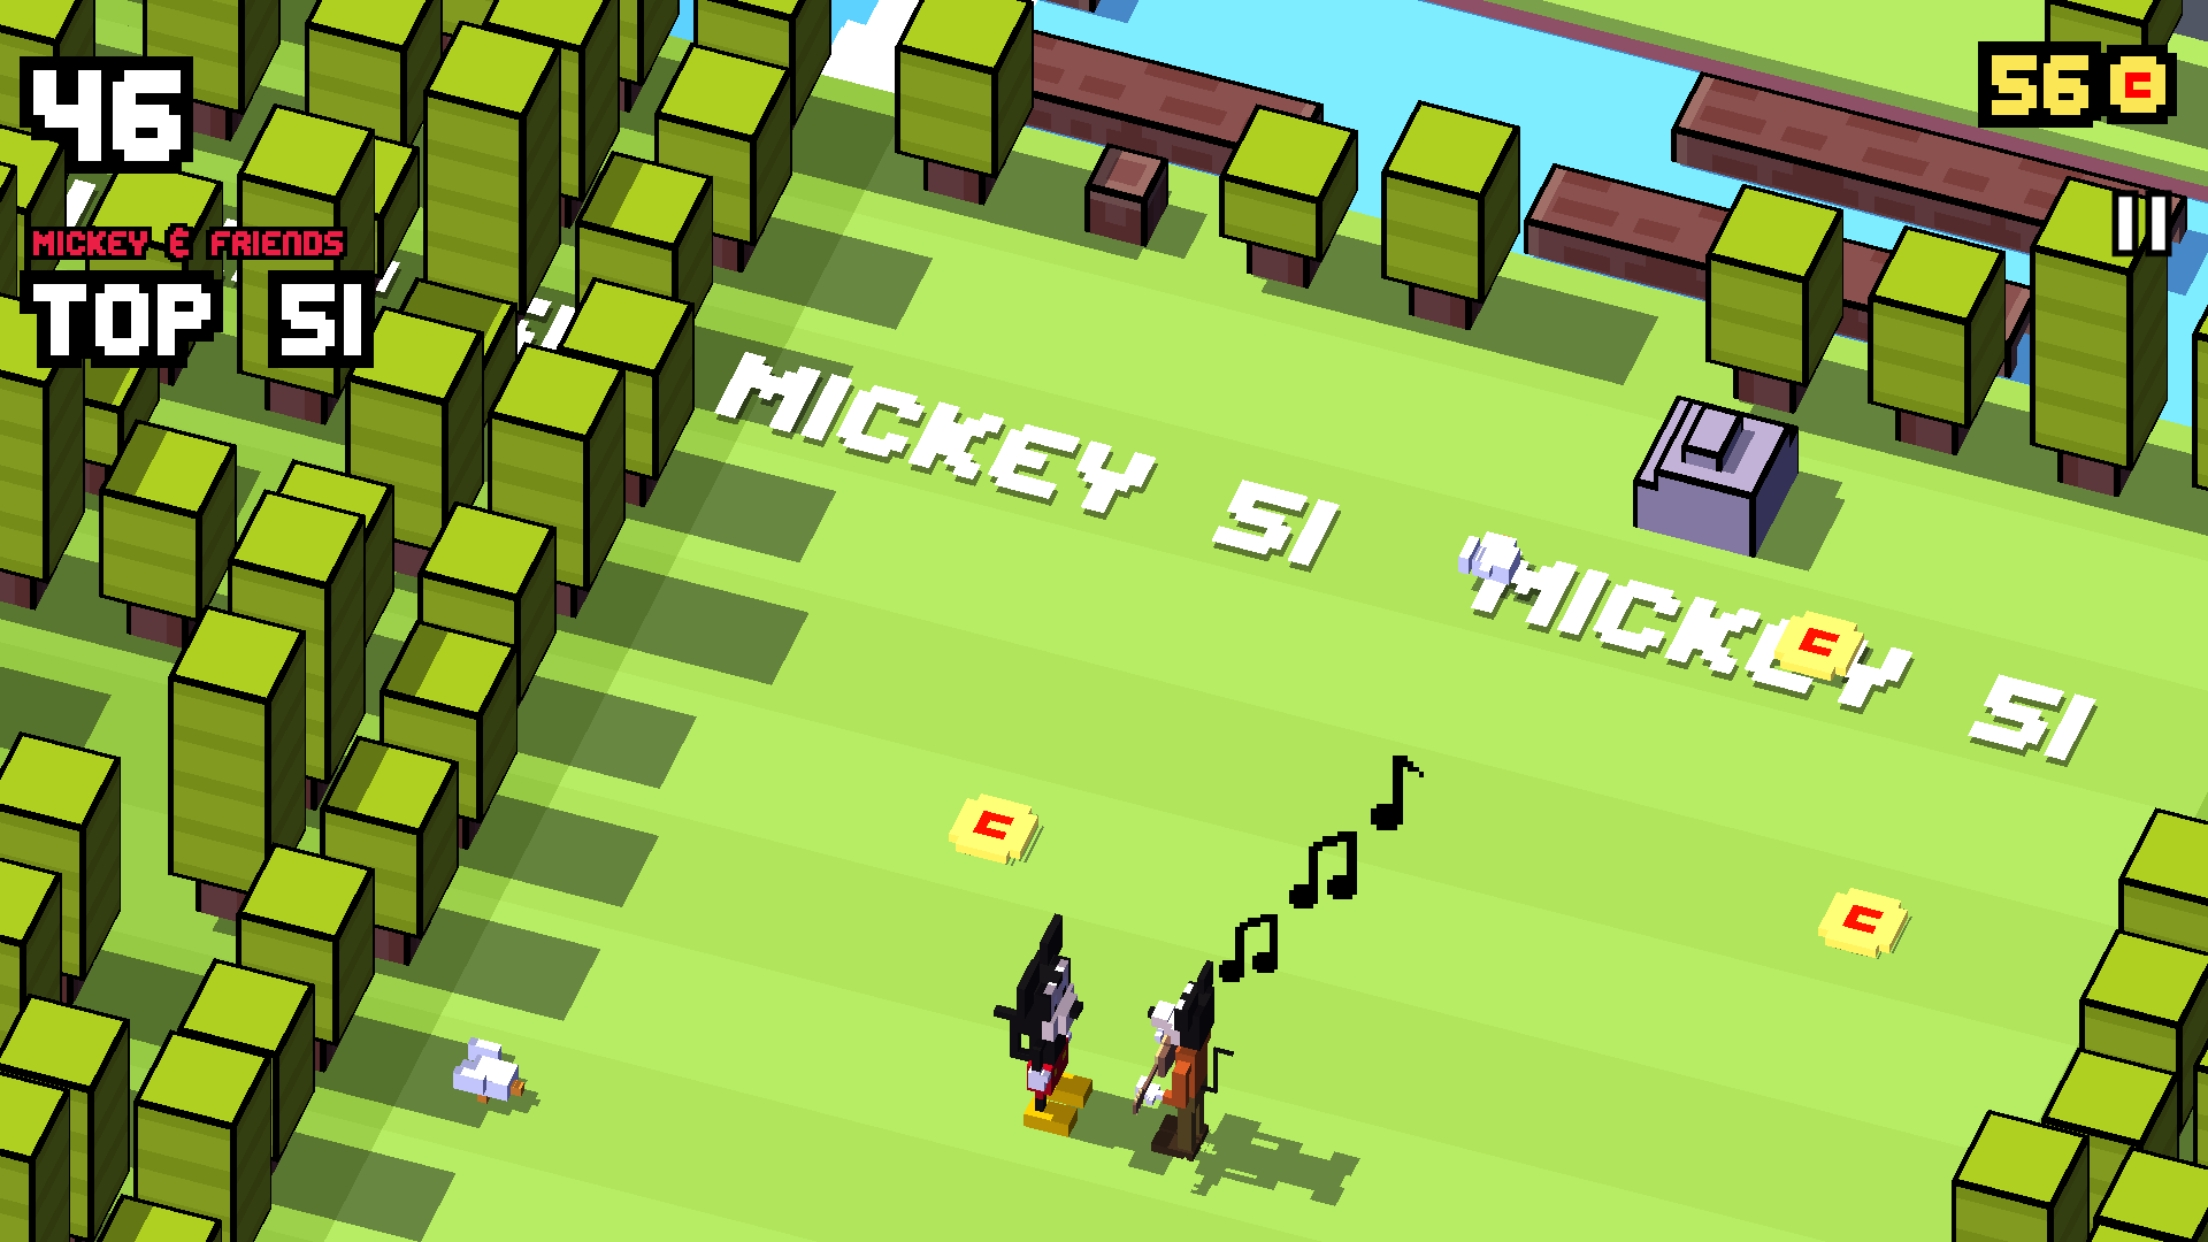 Disney Crossy Road - Mickey and Friends